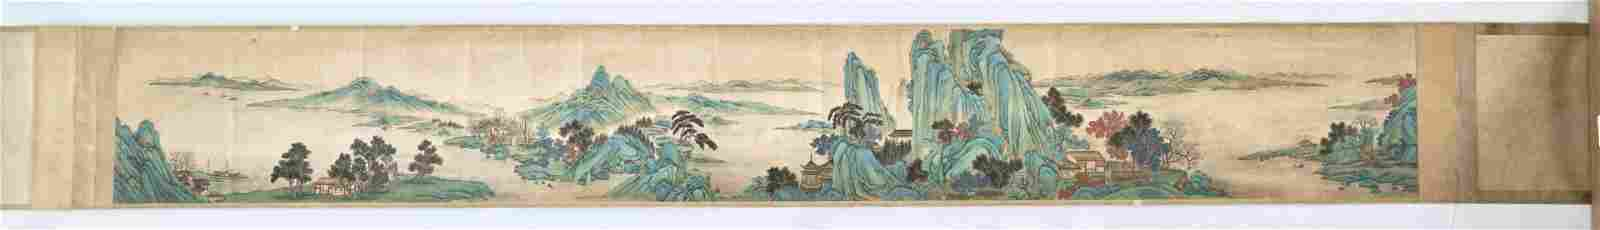 A large blue and green handscroll painting, Qing